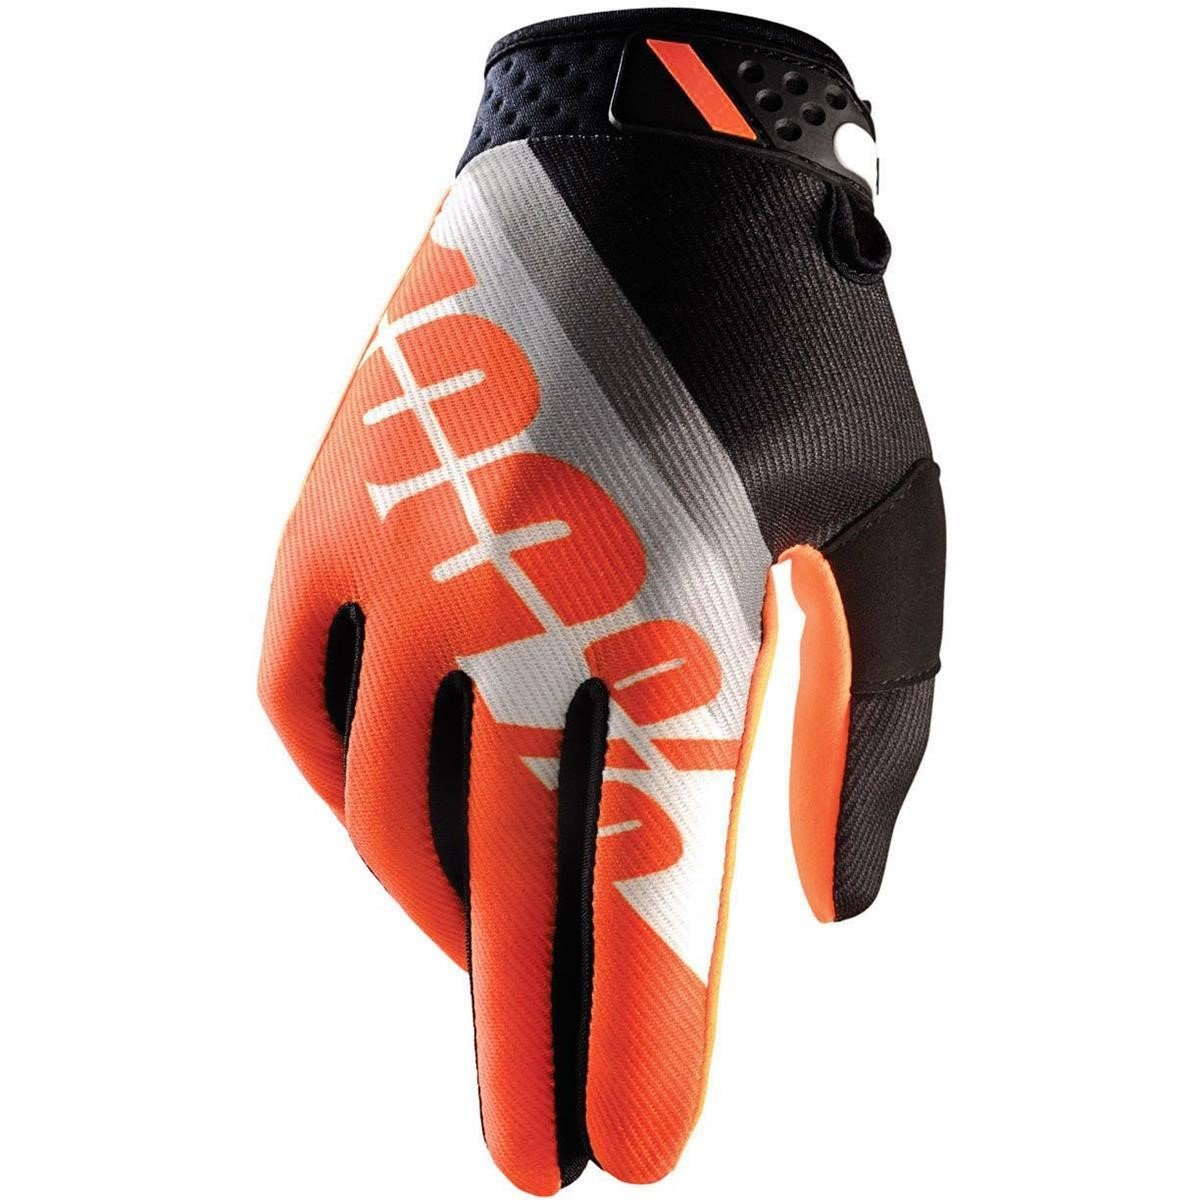 100% Bike-Handschuhe Ridefit Slant Orange